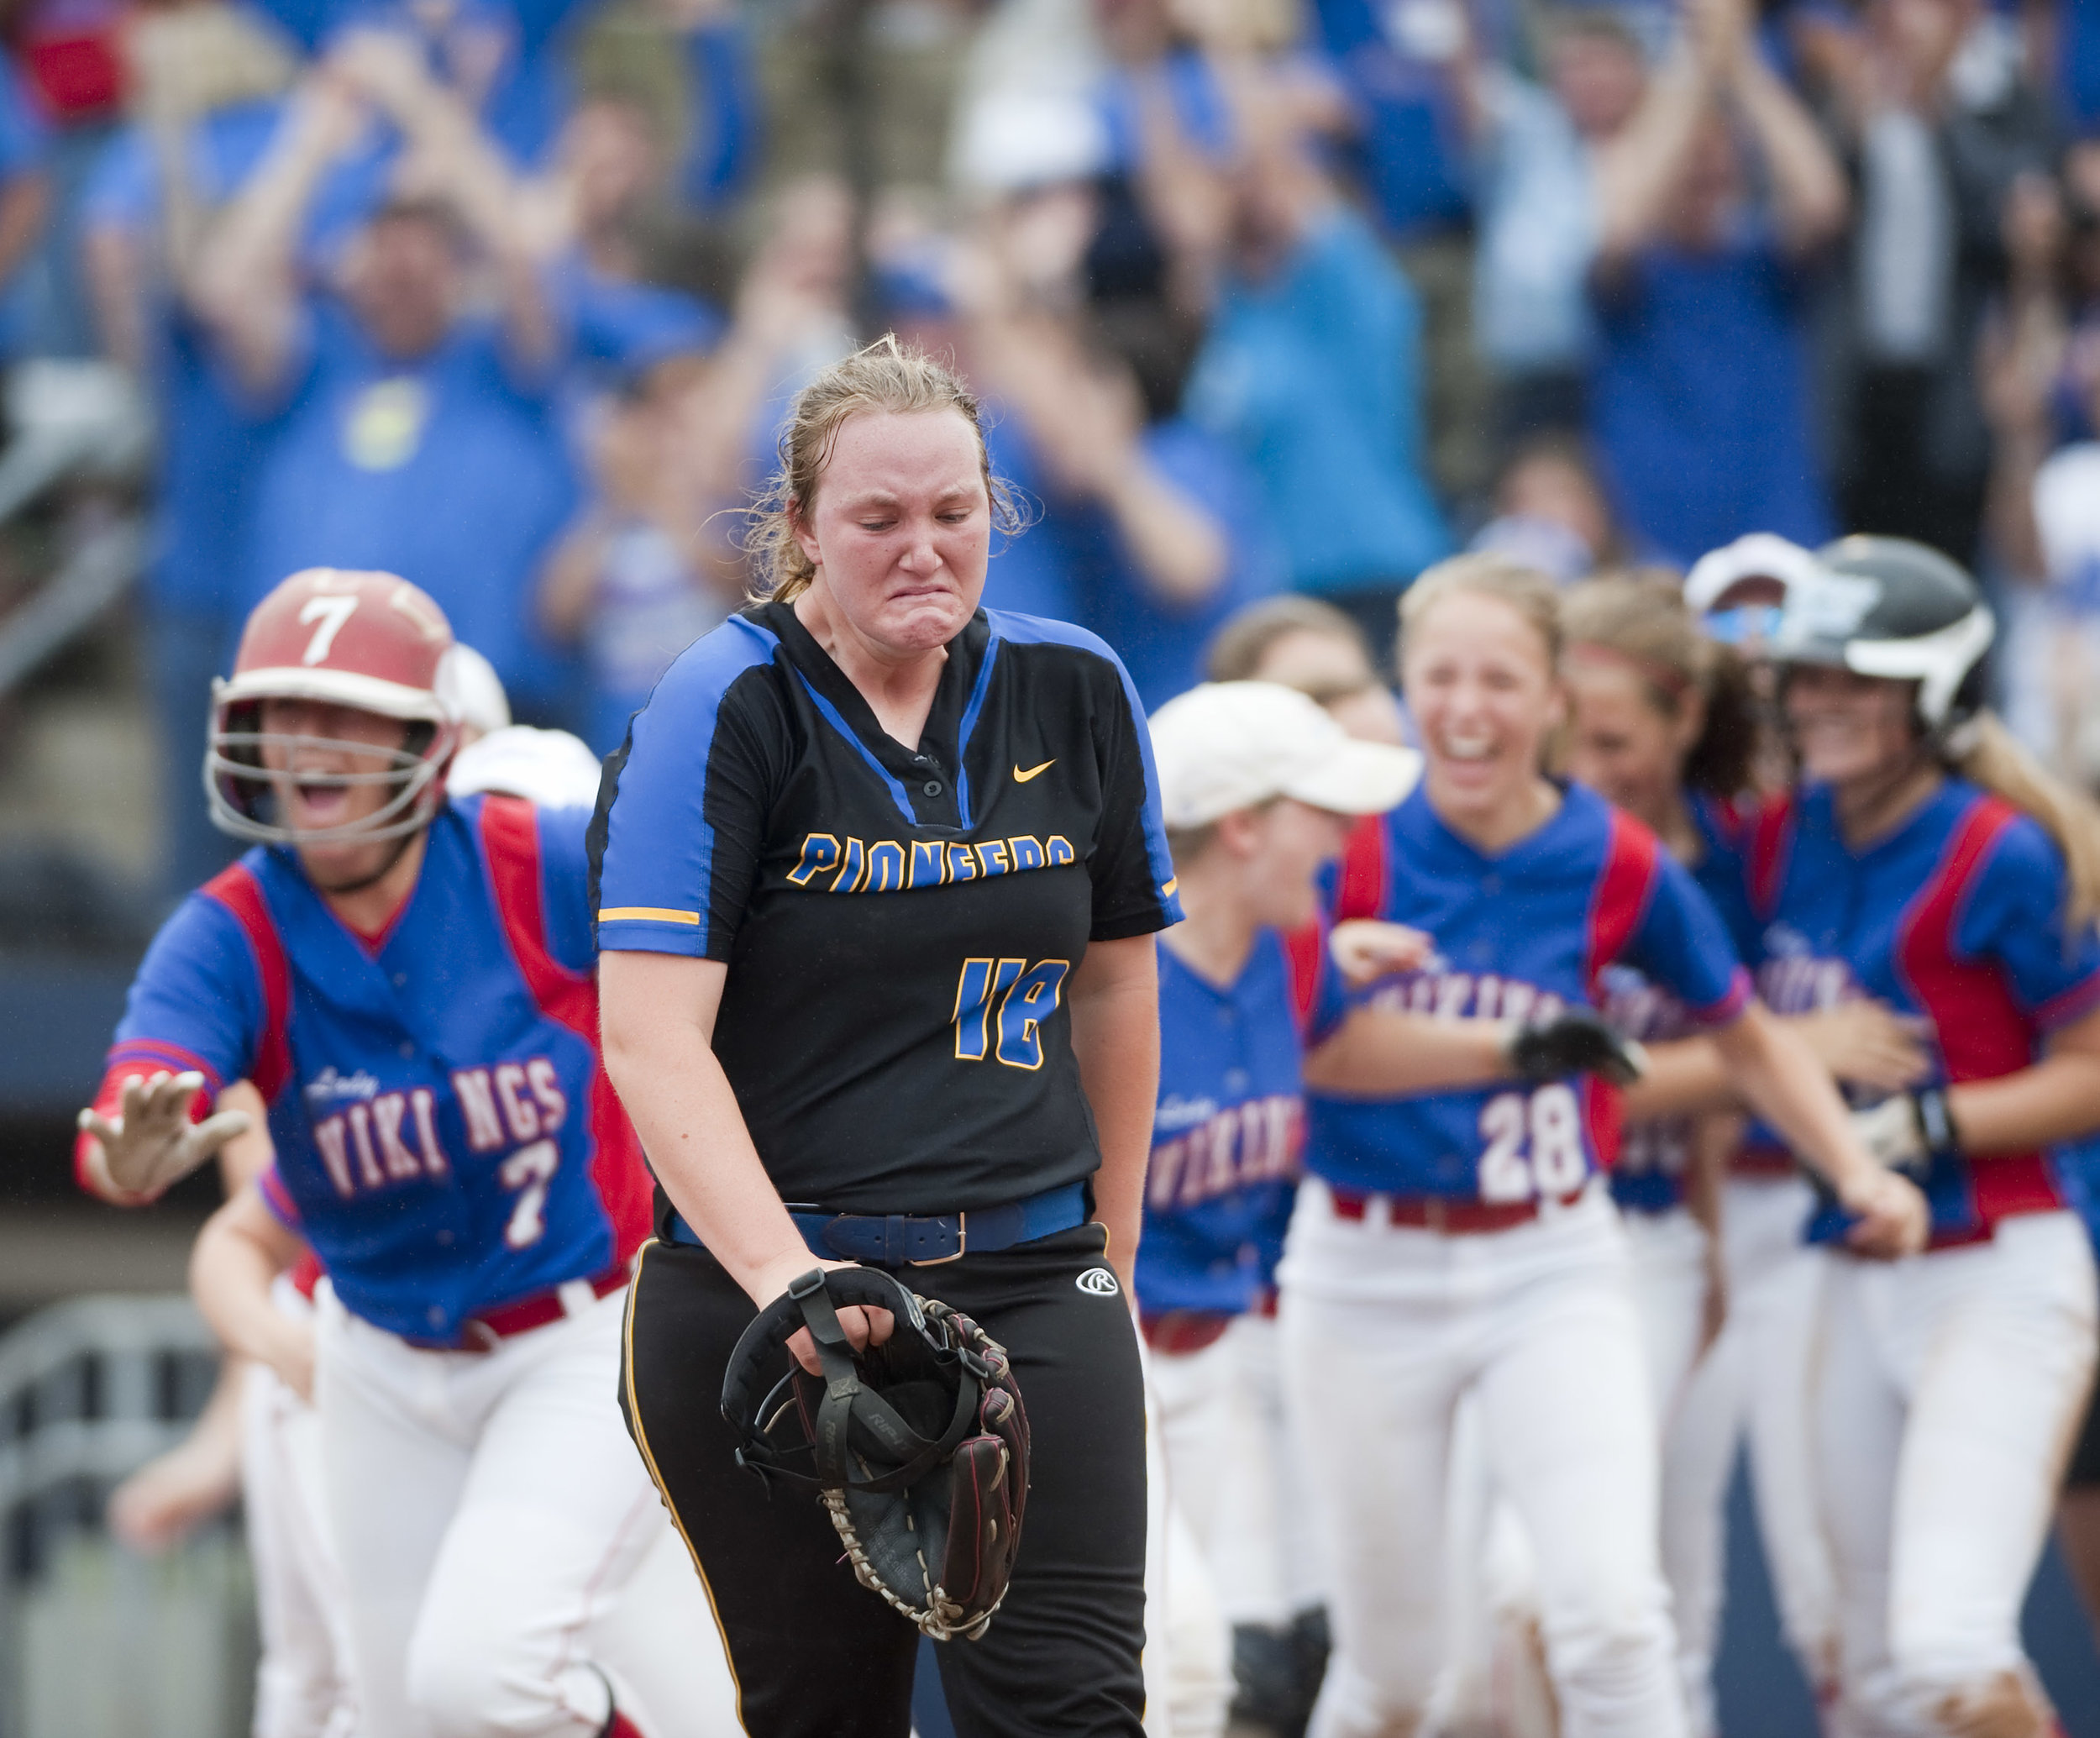 West Greene's Madison Renner becomes emotional as Williams Valley celebrates their win during the Class A PIAA Softball Championships Thursday, June 16, 2016 at Penn State University. Williams Valley won 3-2.